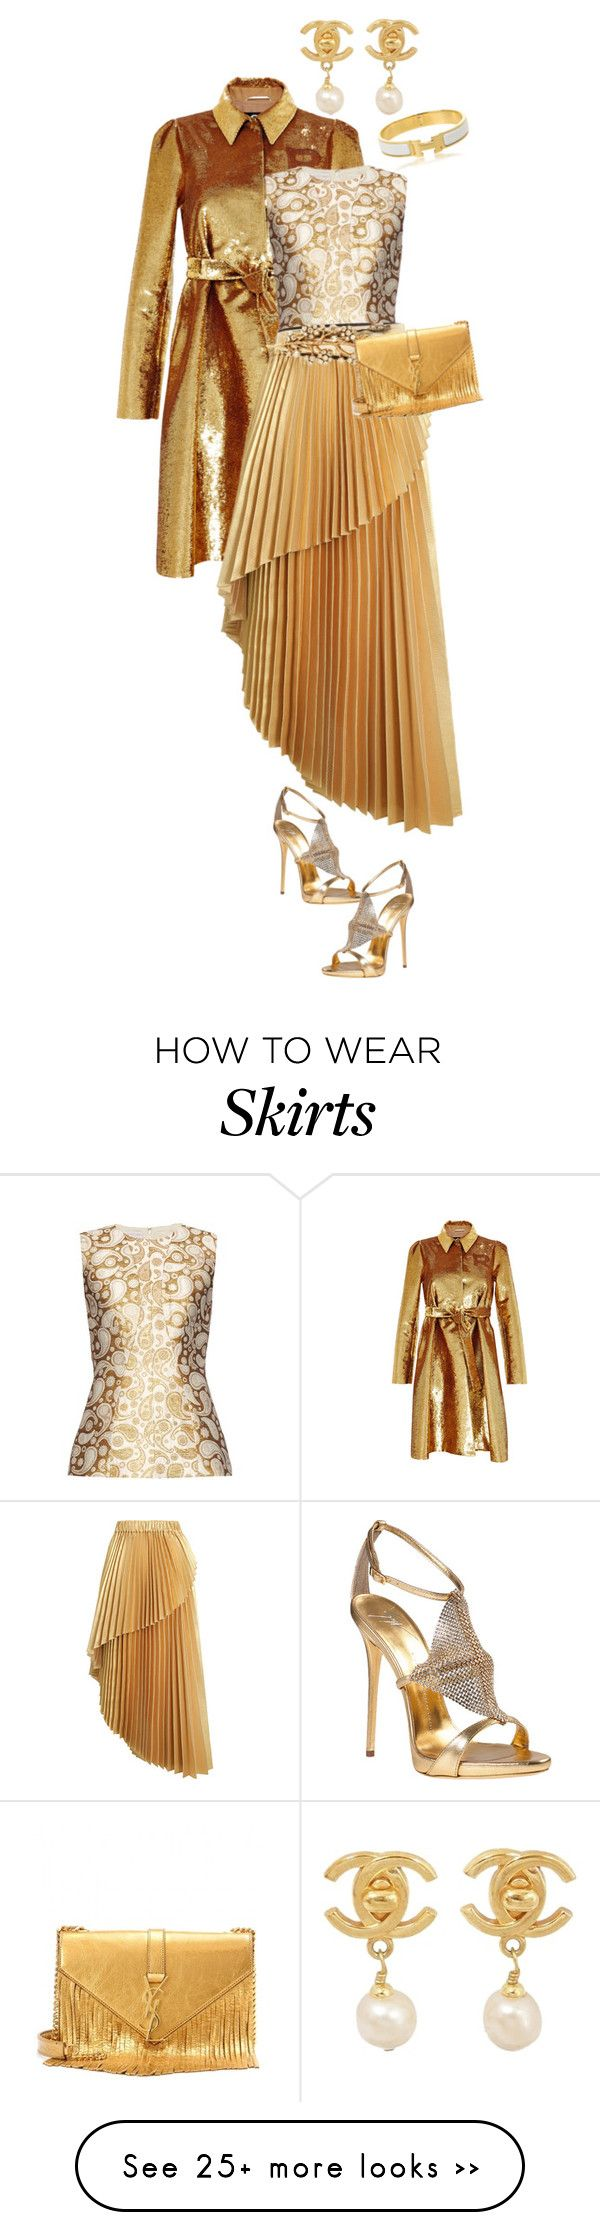 """""""Golden Glamour - Outfit Only Challenge"""" by linolygreen on Polyvore featuring Rochas, STELLA McCARTNEY, Zimmermann, Giuseppe Zanotti, Oscar de la Renta, Yves Saint Laurent, Chanel, Hermès, gold and contestentry"""